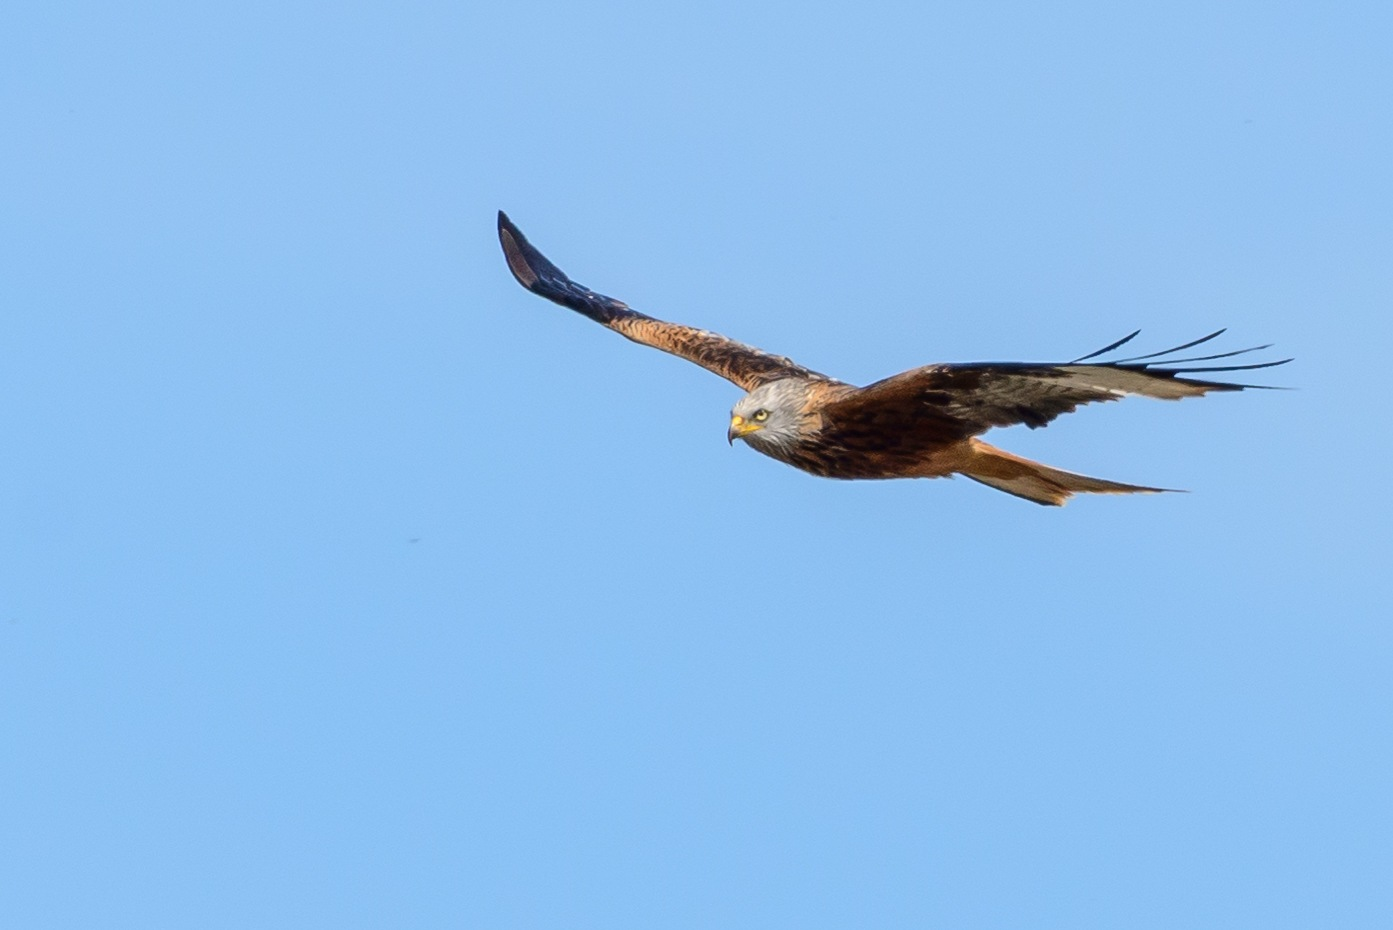 Kite in Flight by Keith Perry